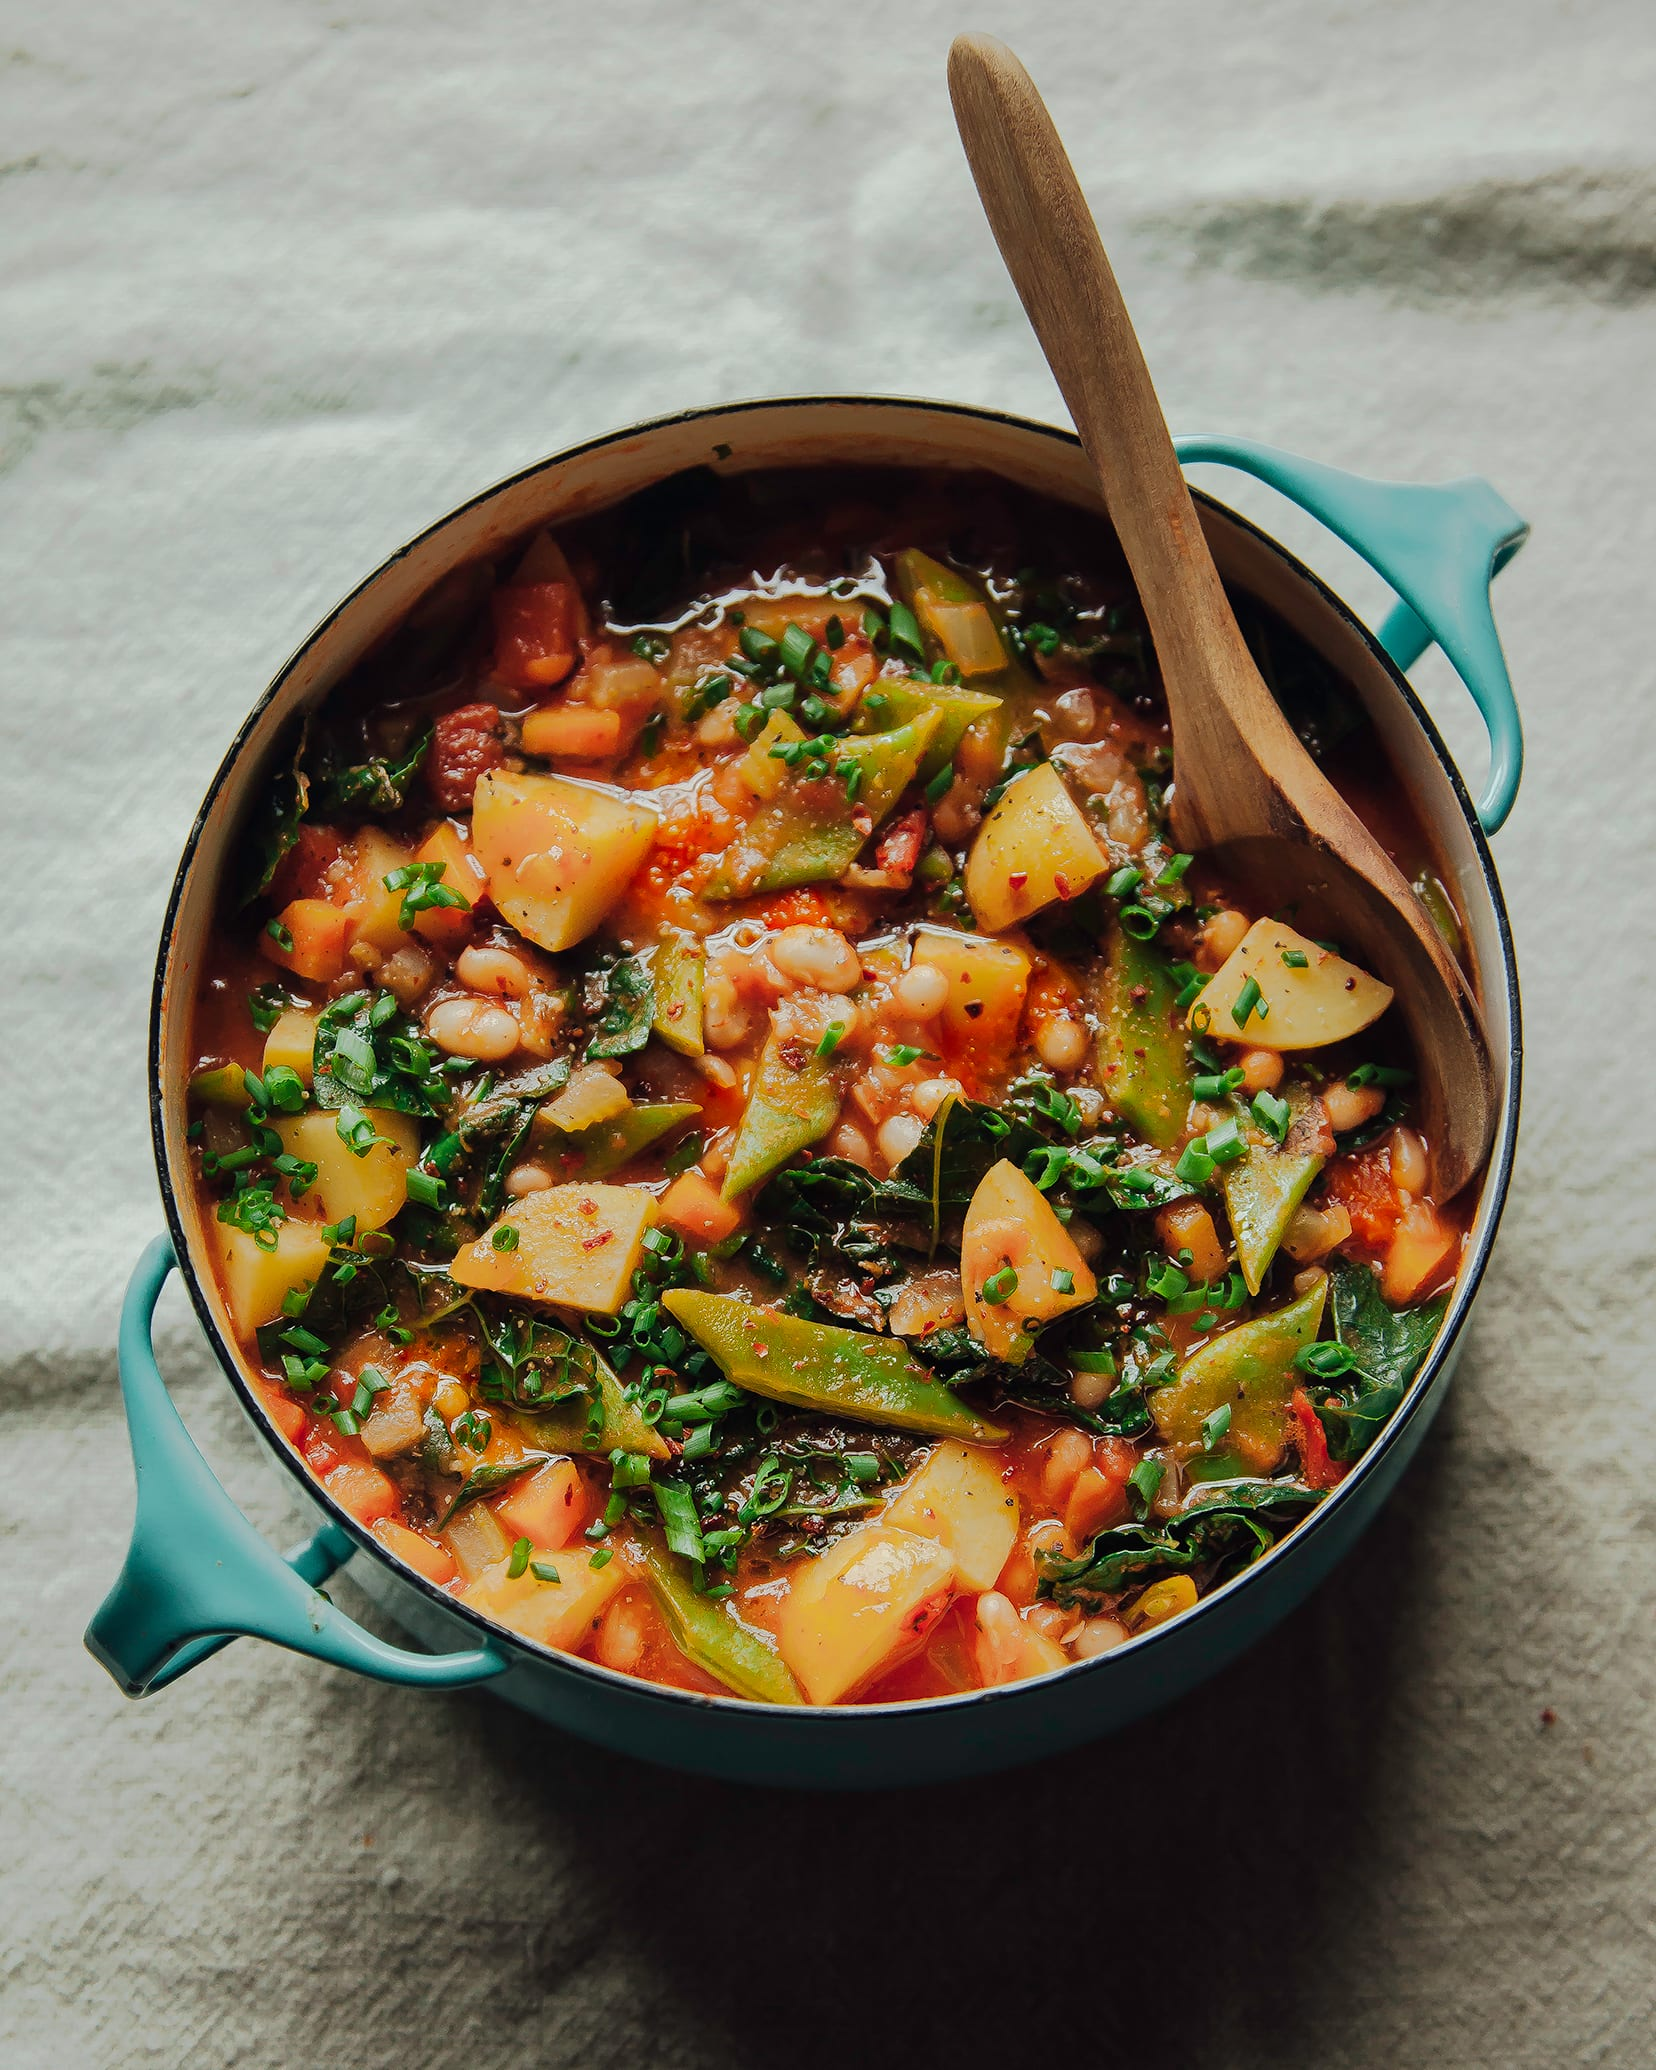 An overhead shot of a tomato-y white bean and potato stew in a turquoise pot.